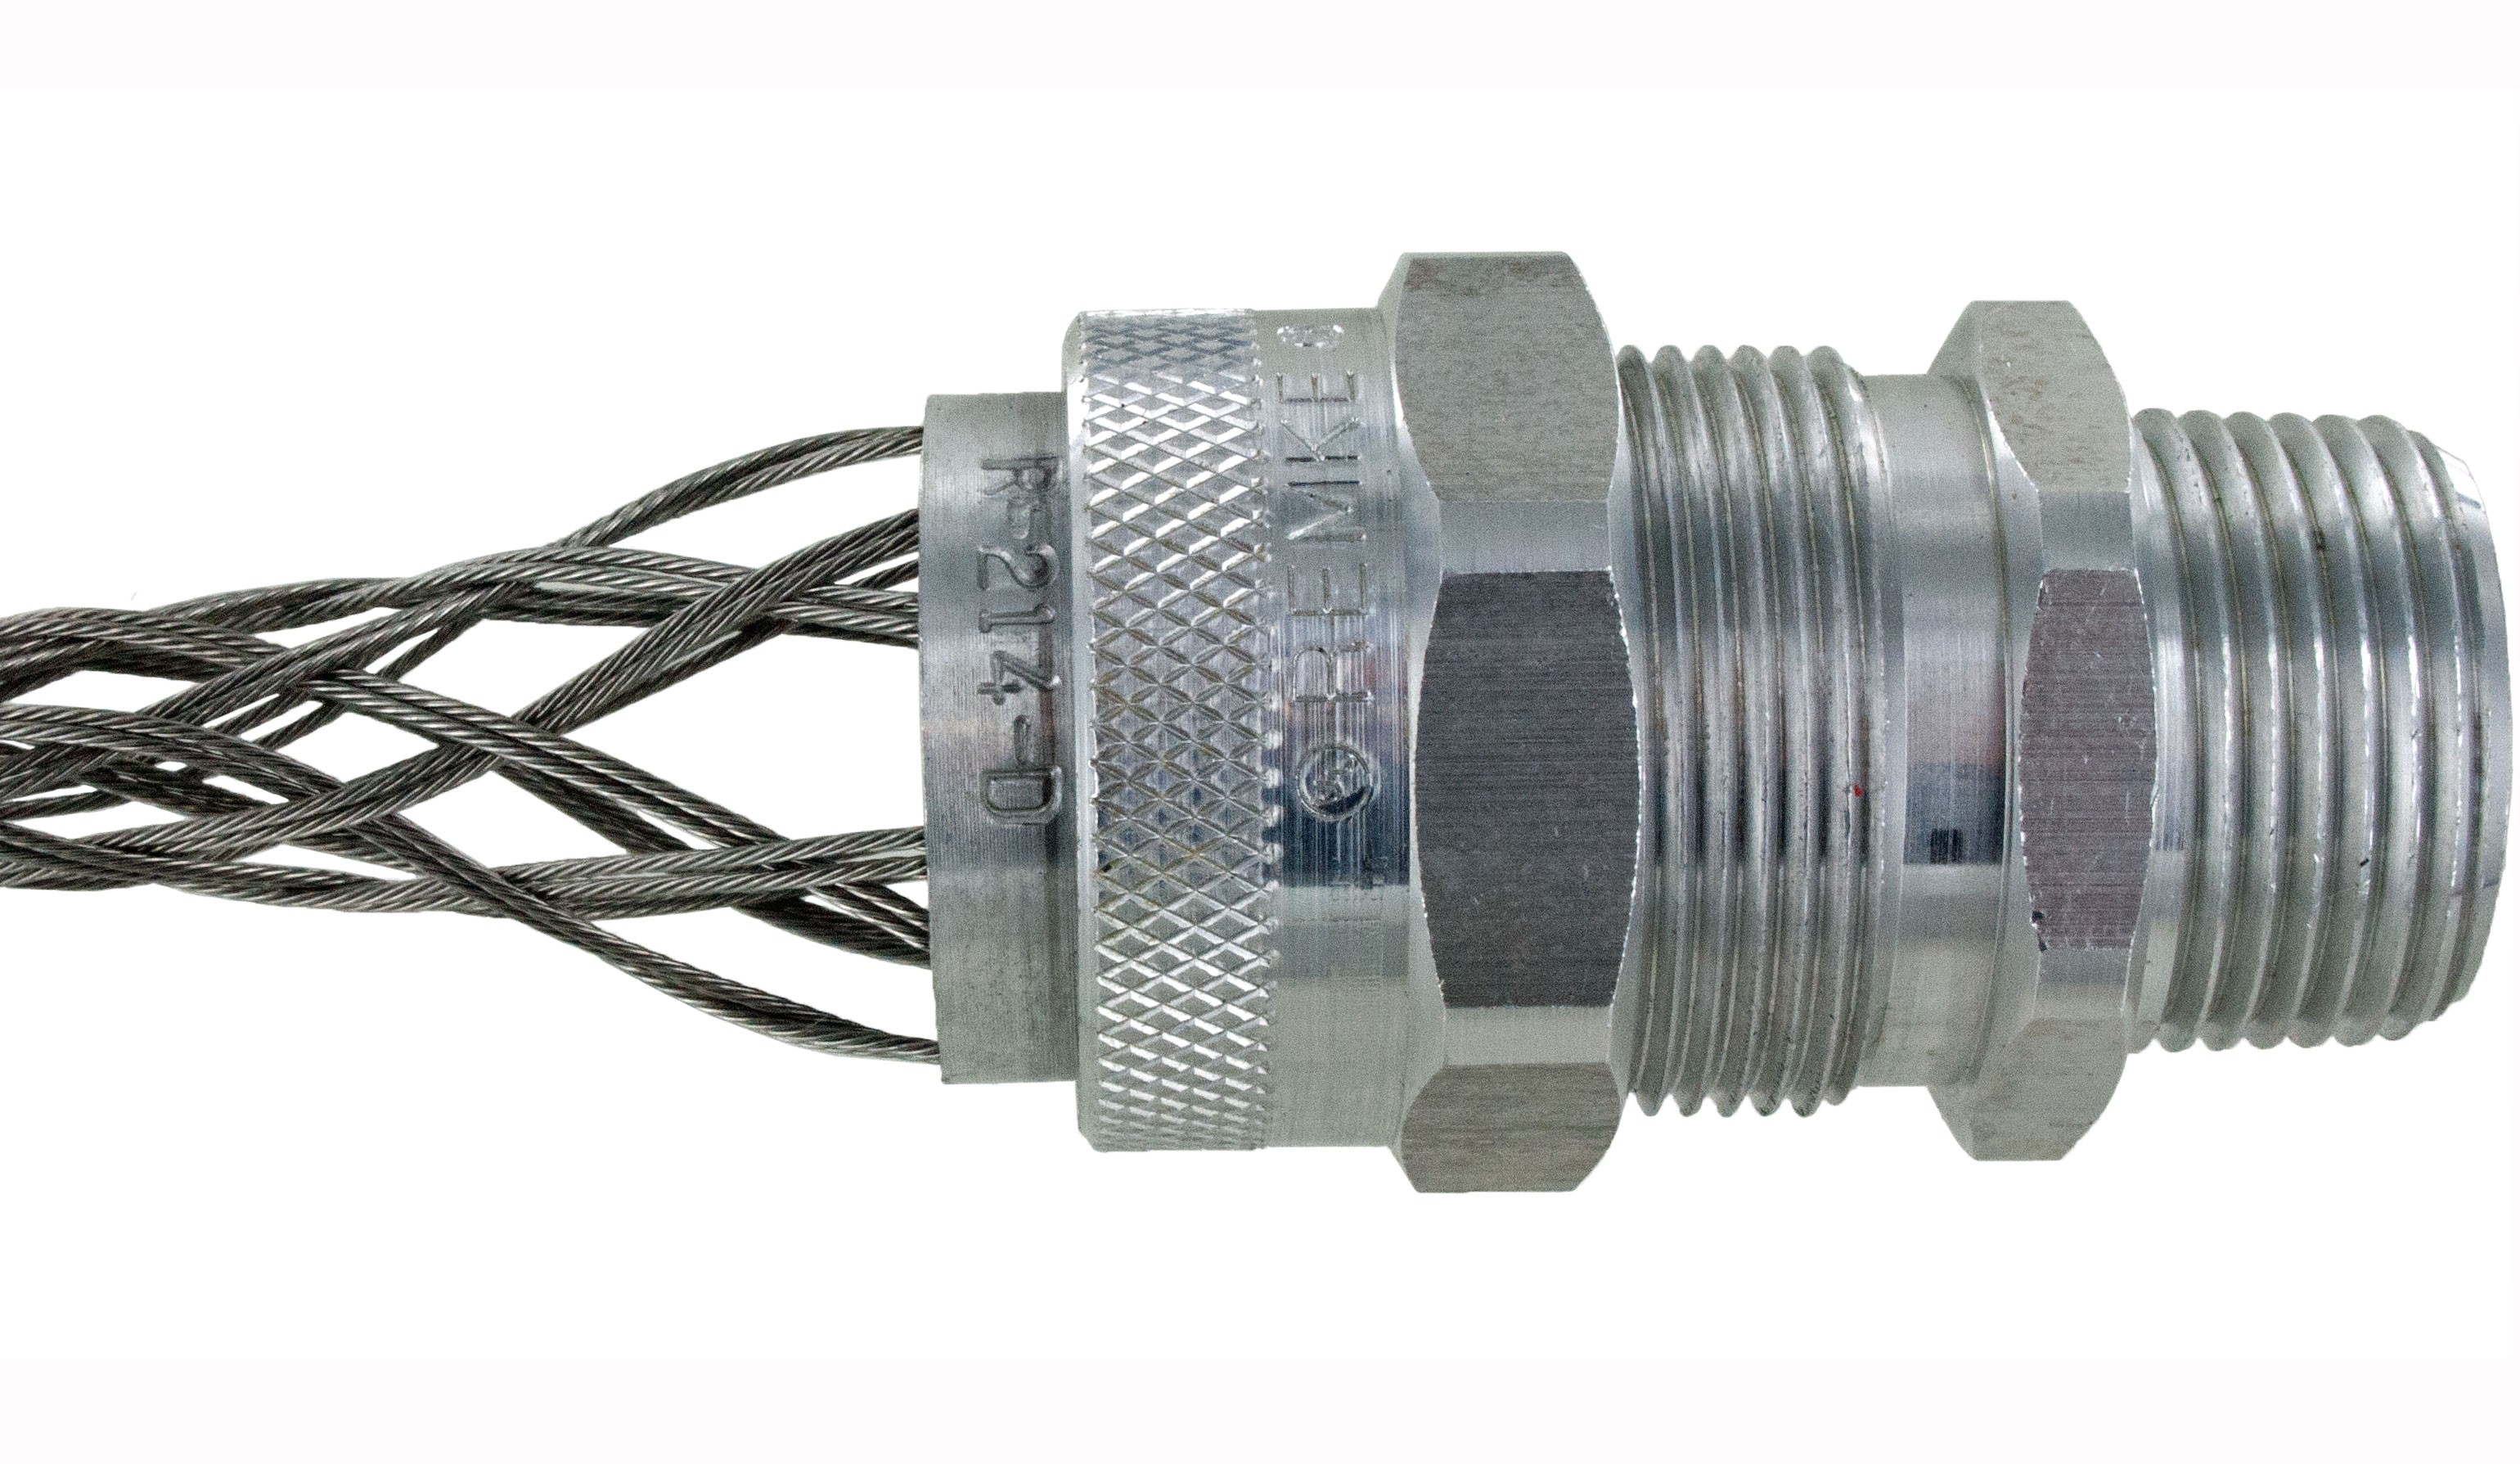 3 4 Quot Npt Cord Grip With Mesh Rsr 2314 E Elecdirect